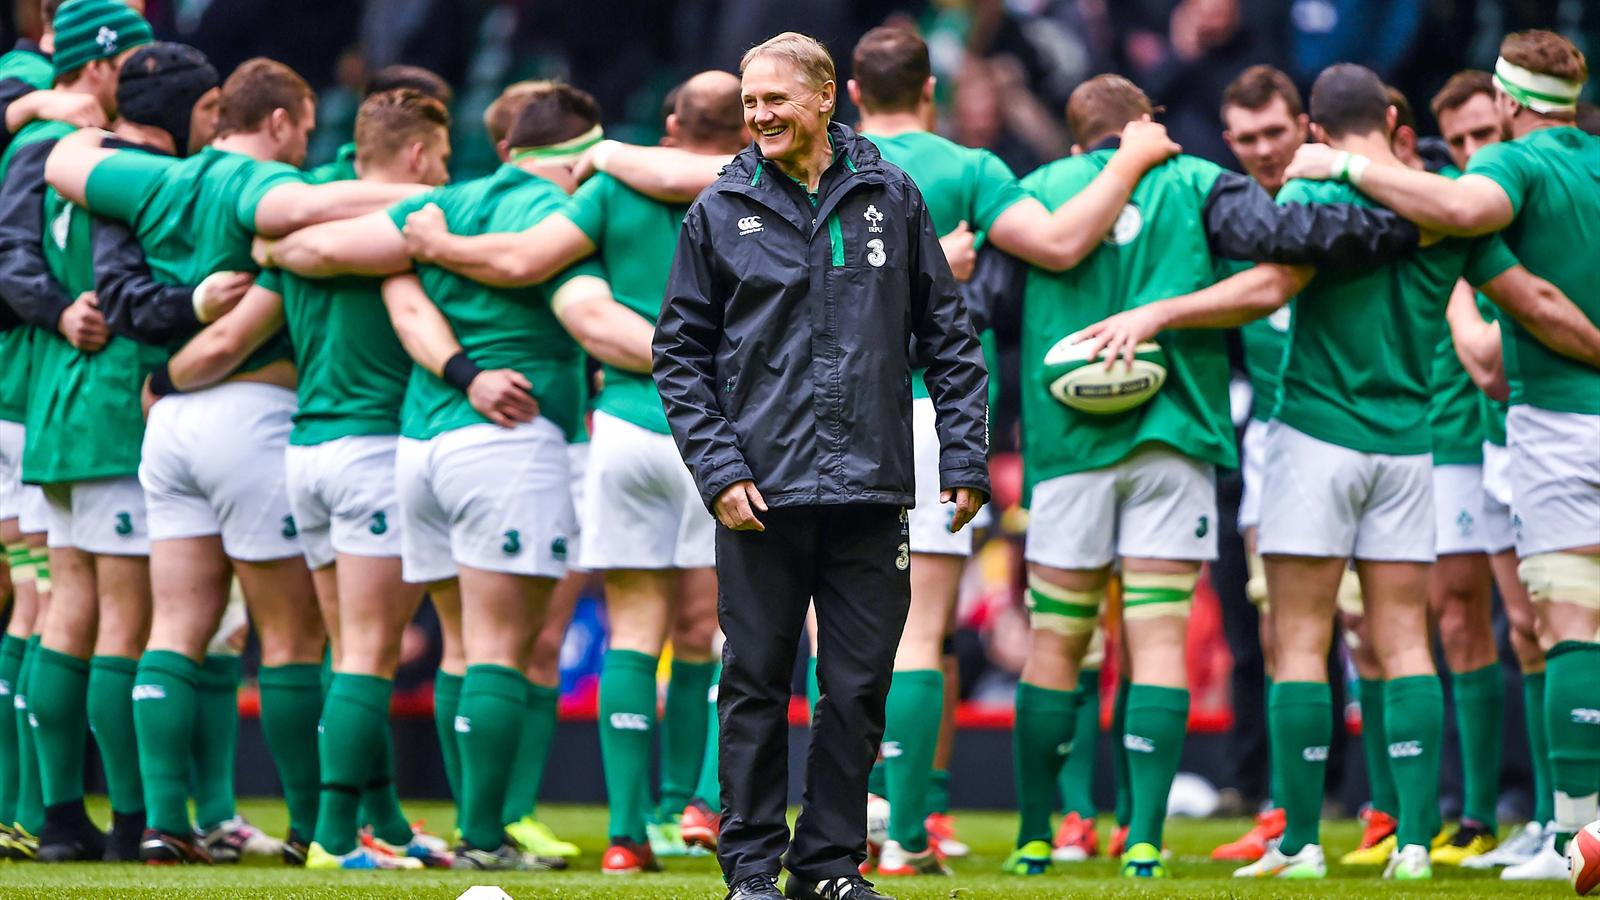 Joe Schmidt devant son groupe - Irlande